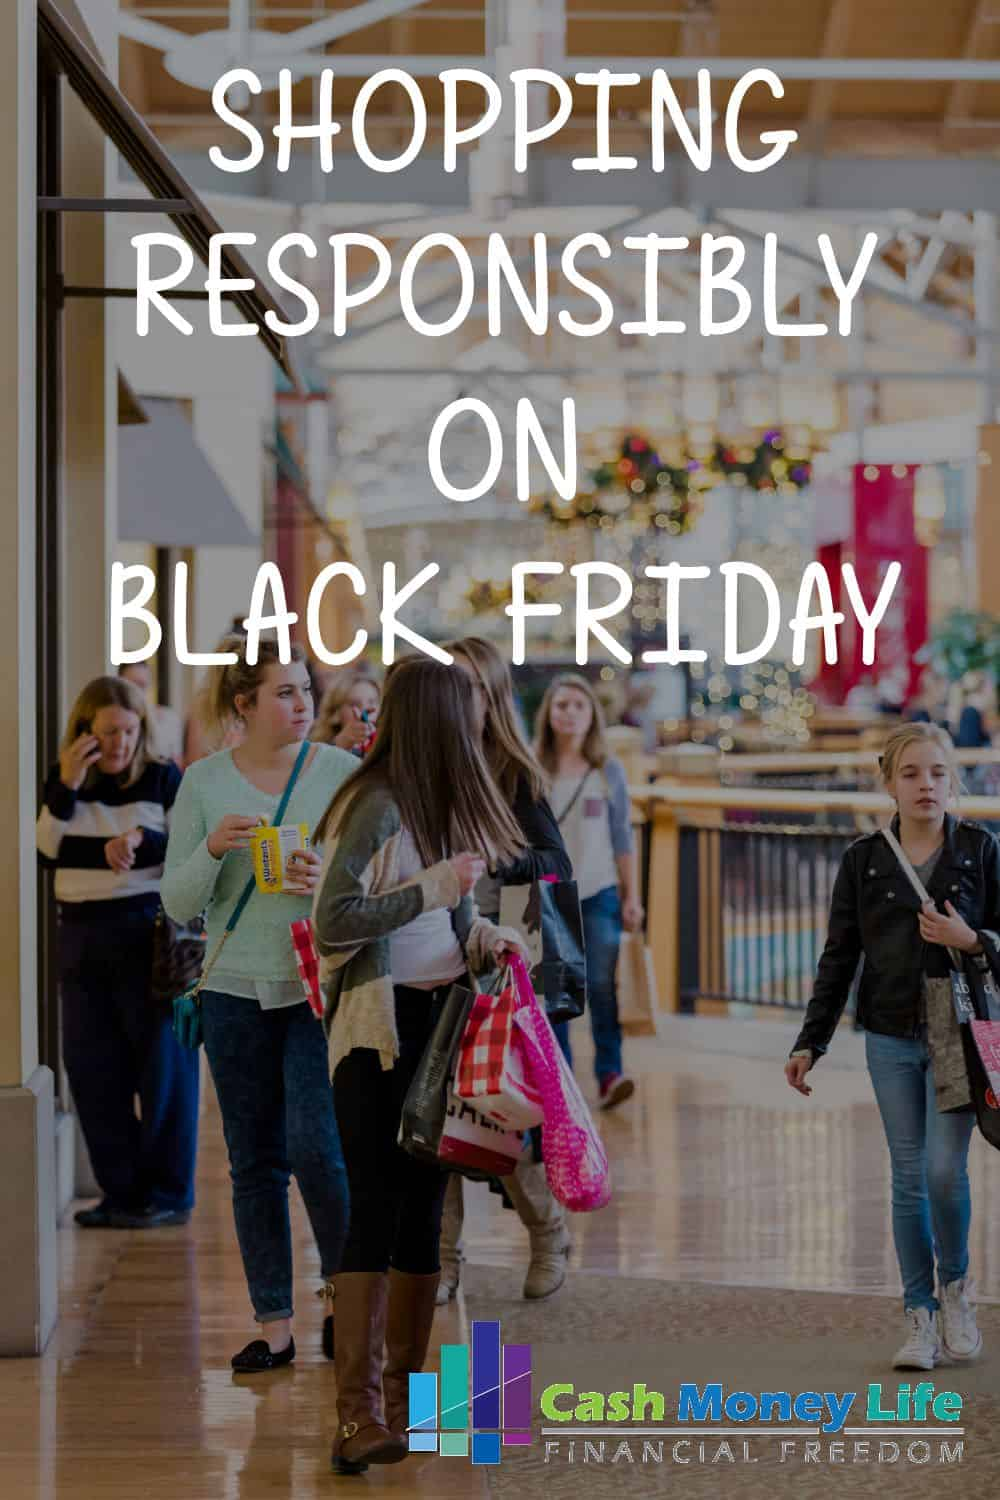 Black Friday Shop Shop Responsibly On Black Friday How To Score Deal W Out The Stress